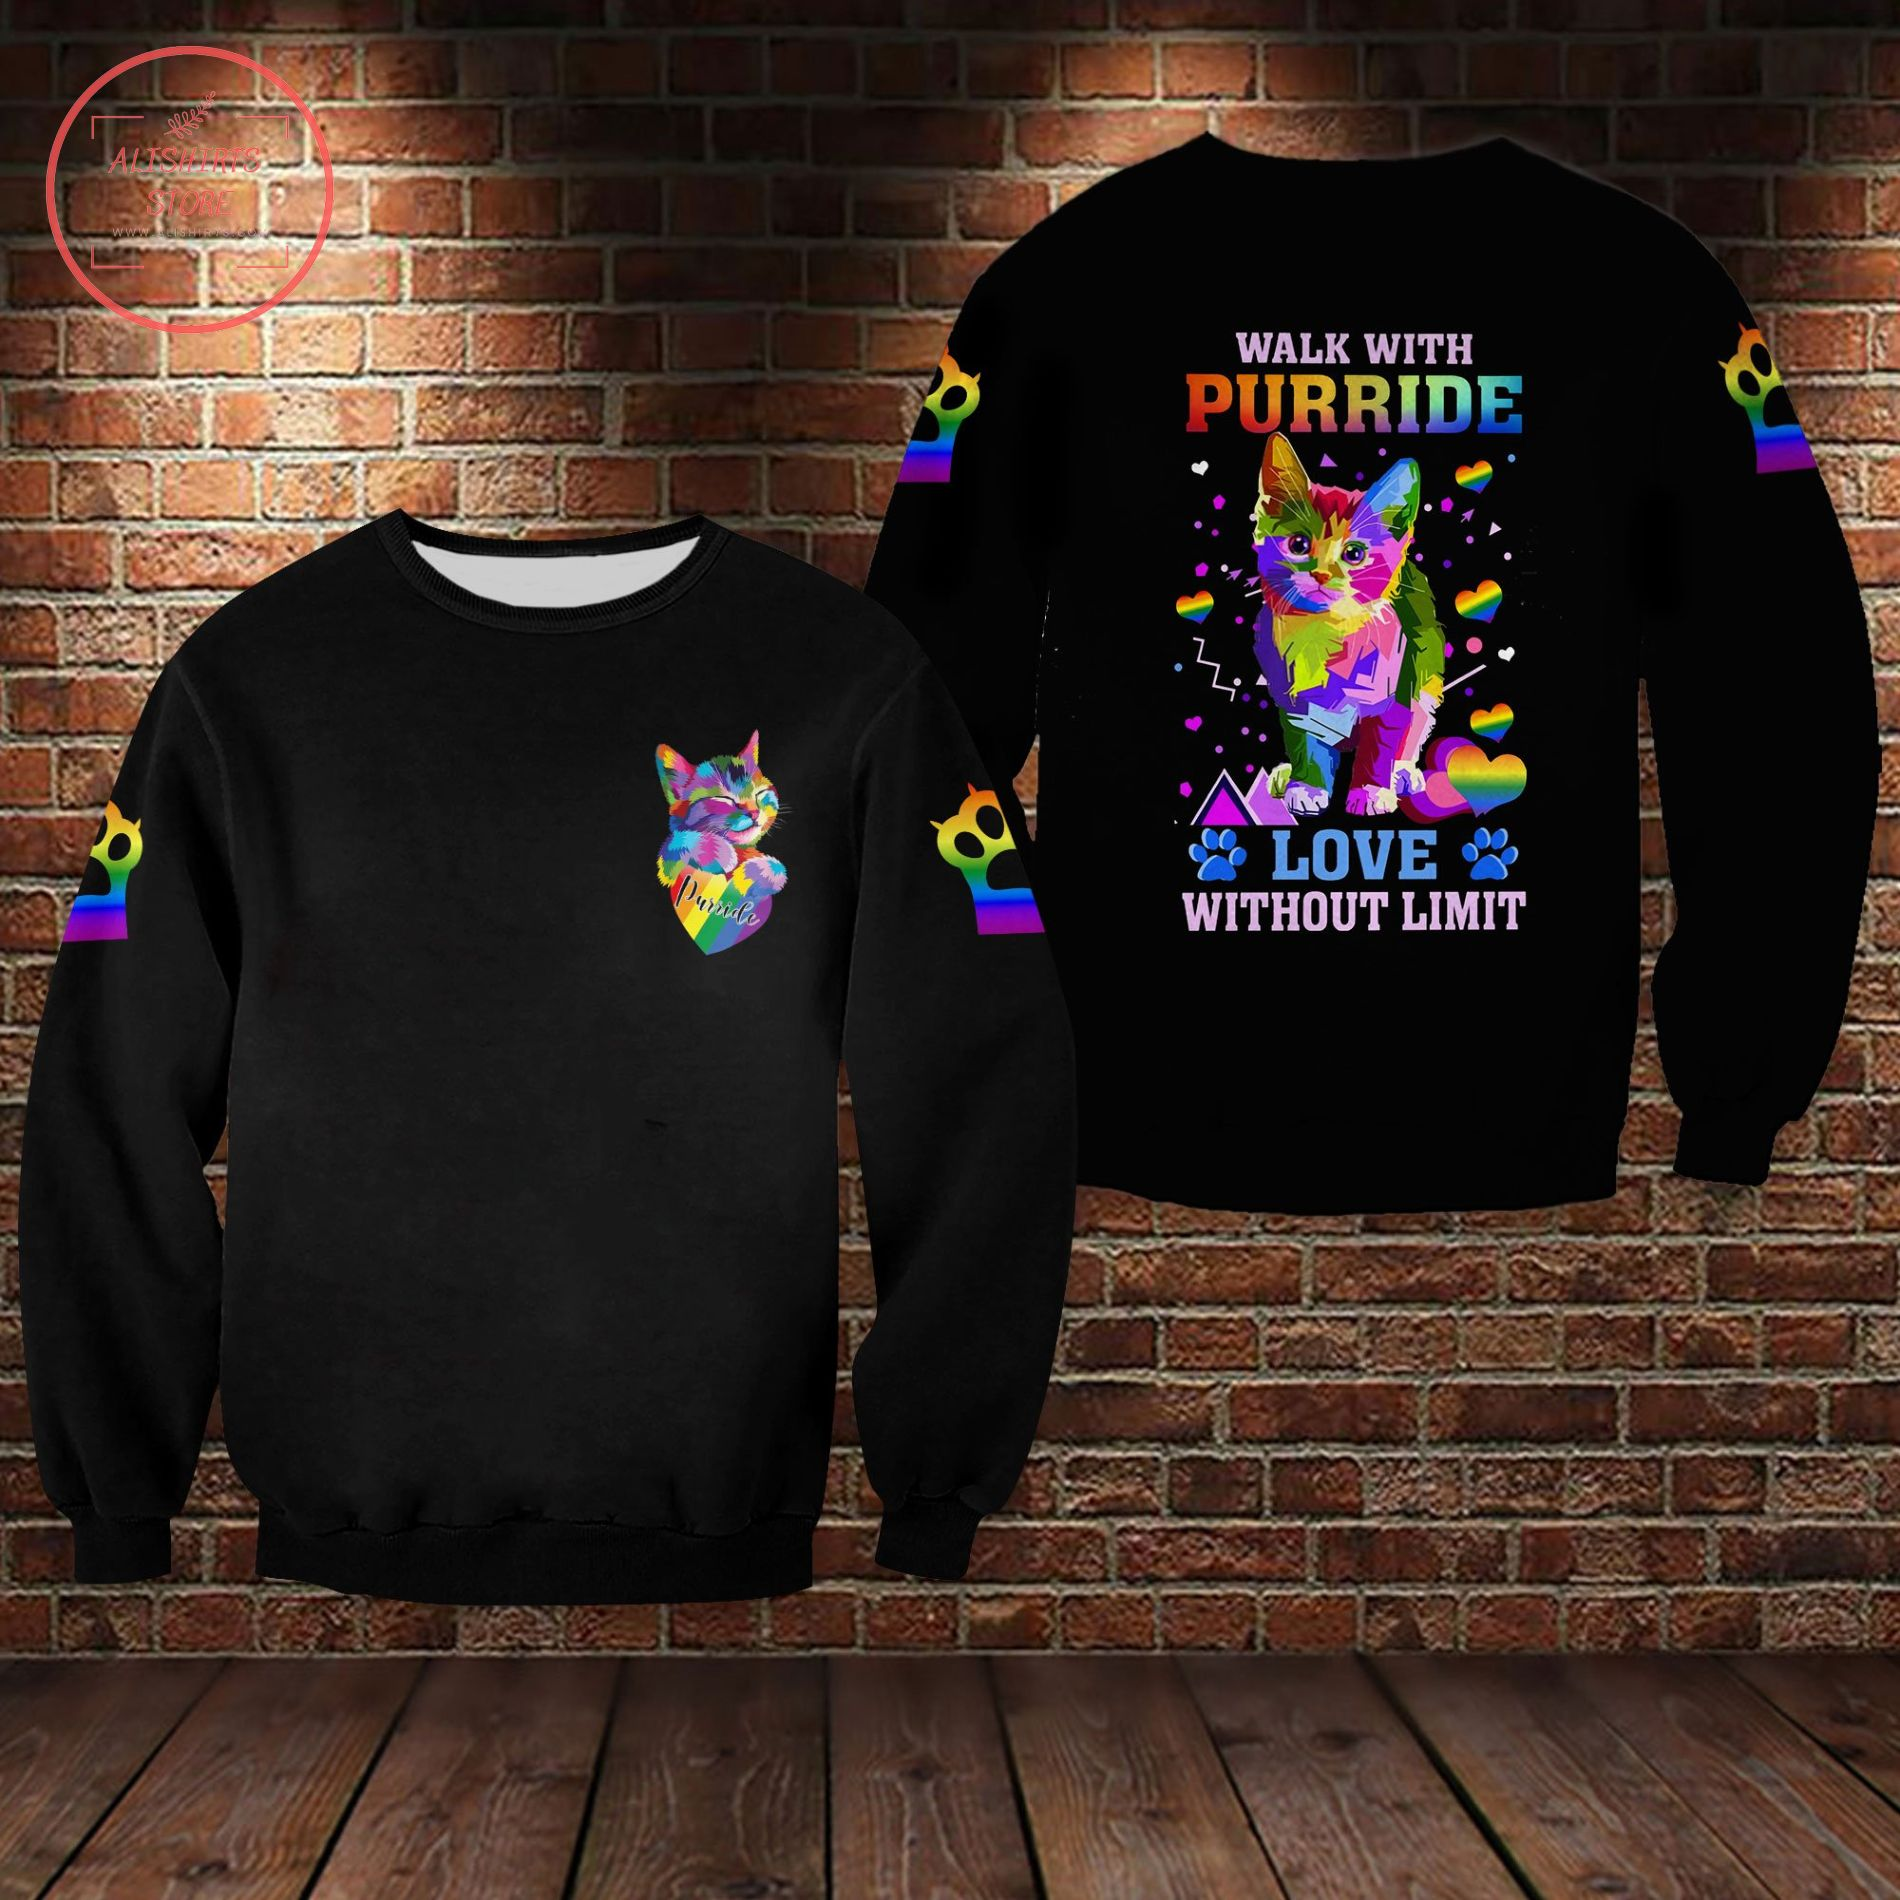 Pride Parade 2021 Lgbt Walk With Purride Love Without Limit 3D All Over Shirts